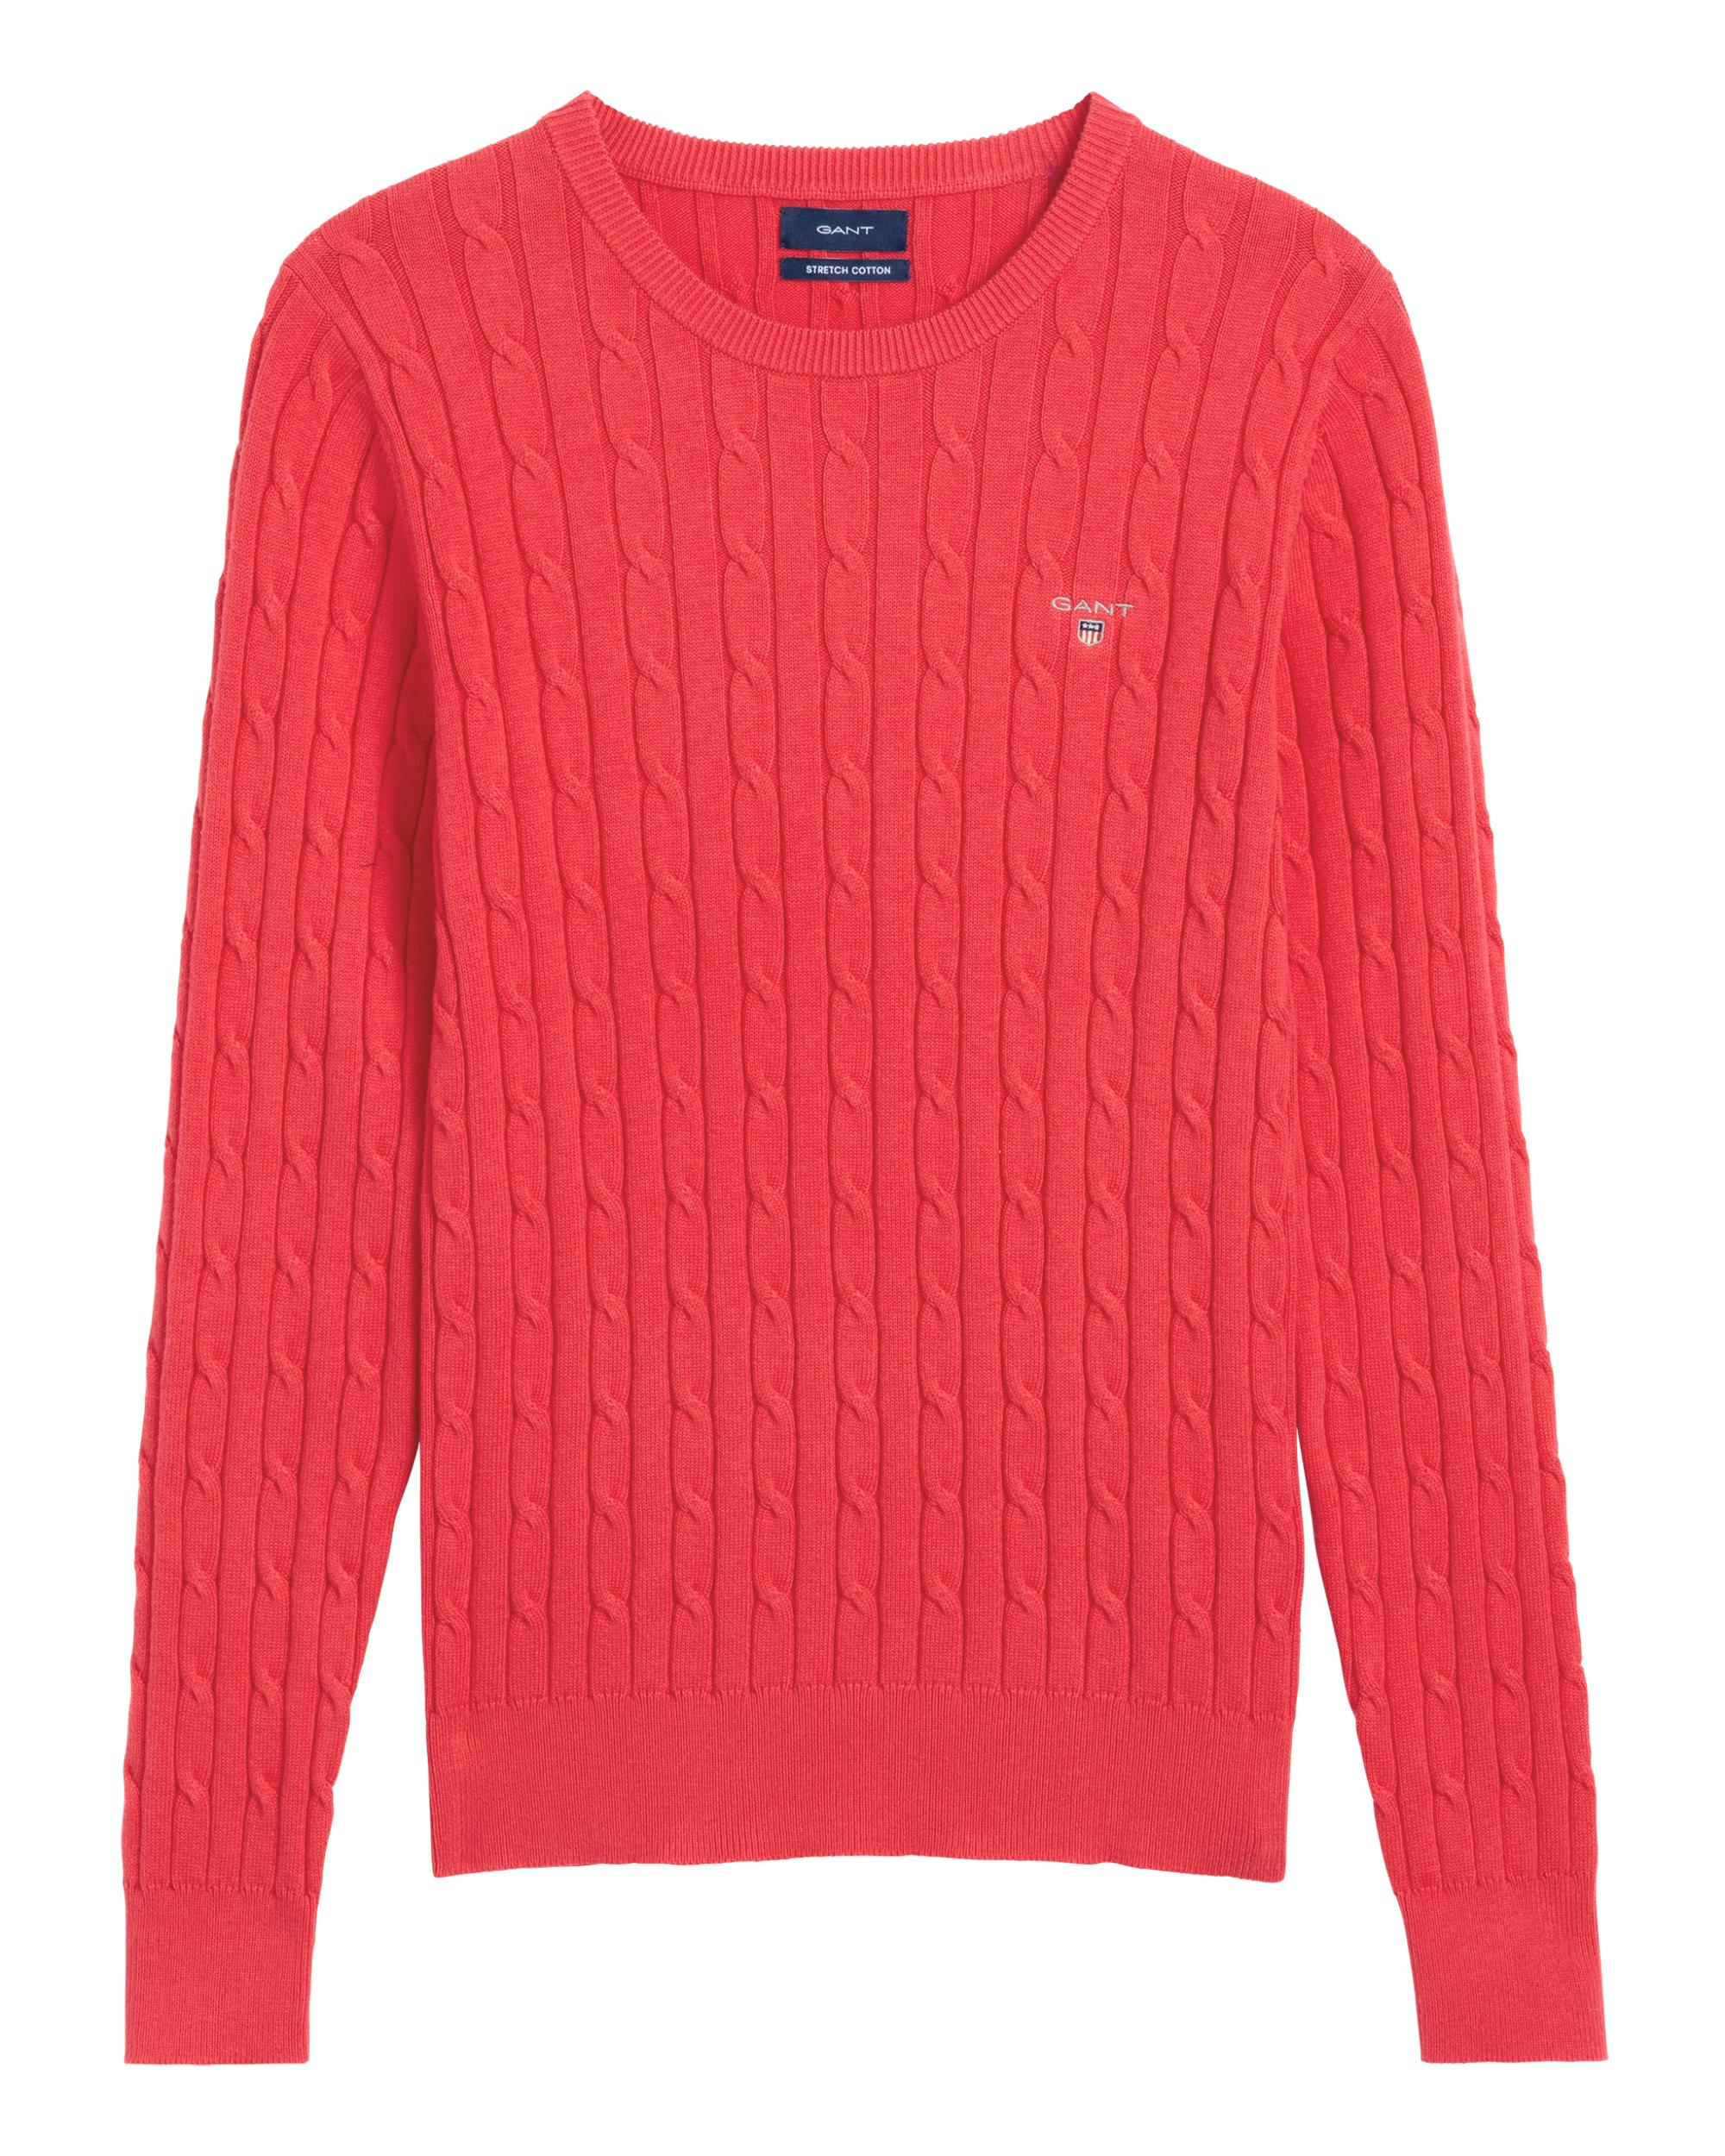 Gant Stretch Cotton Cable Crew Sweater in Red - Lyst 4e7ecbfb19fb